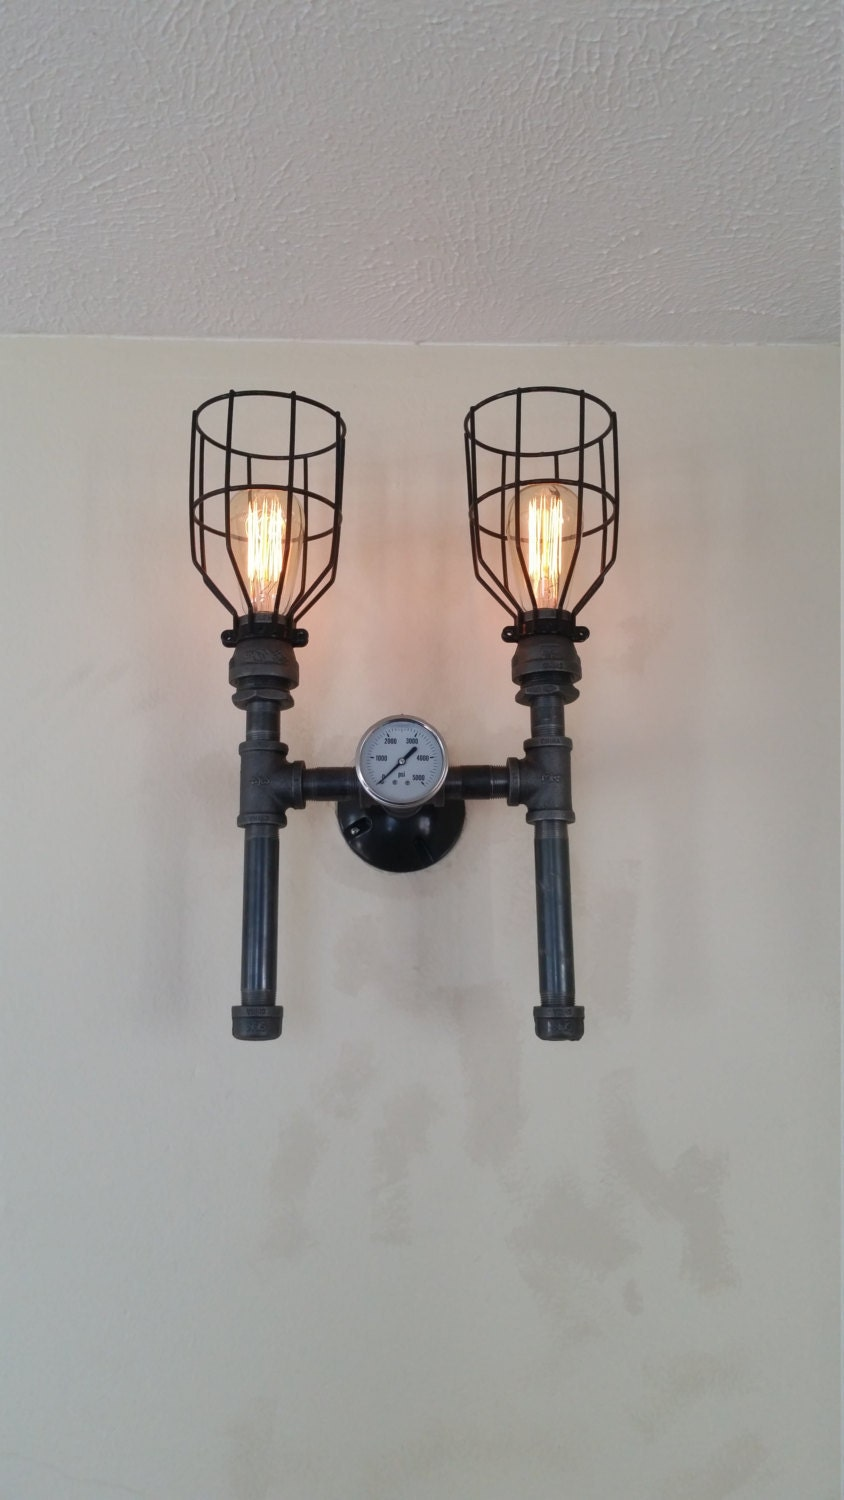 Industrial Style Double Wall Lights : Double Bathroom light Industrial Sconce Wall Light